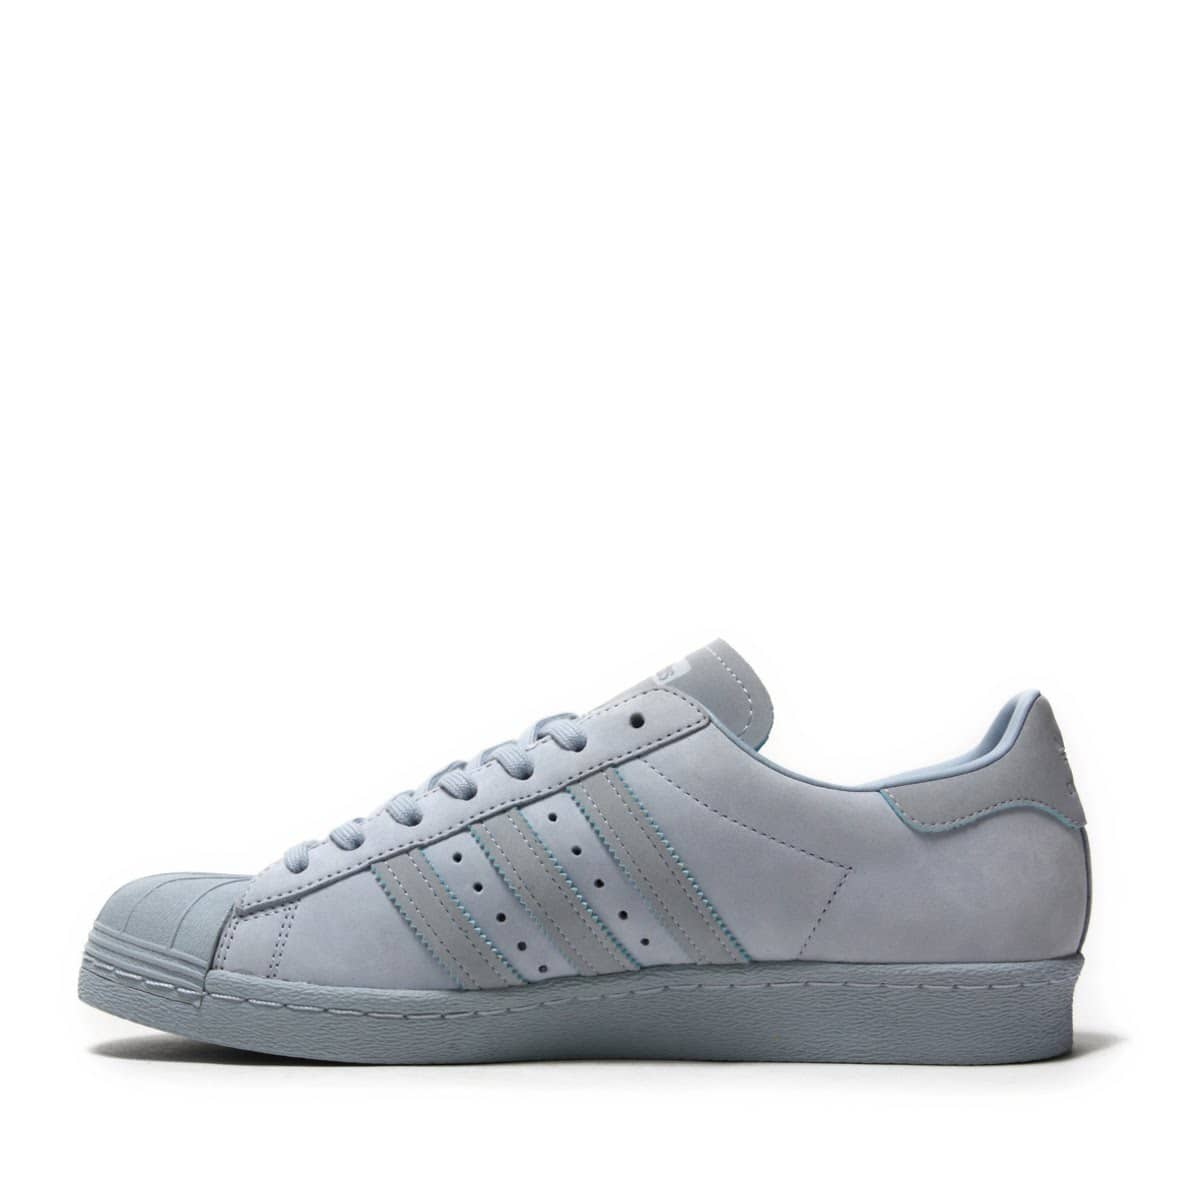 lowest price 0fd1f 1fa8e adidas Originals SUPERSTAR 80s Aero Blue/Aero Blue/Aero Blue